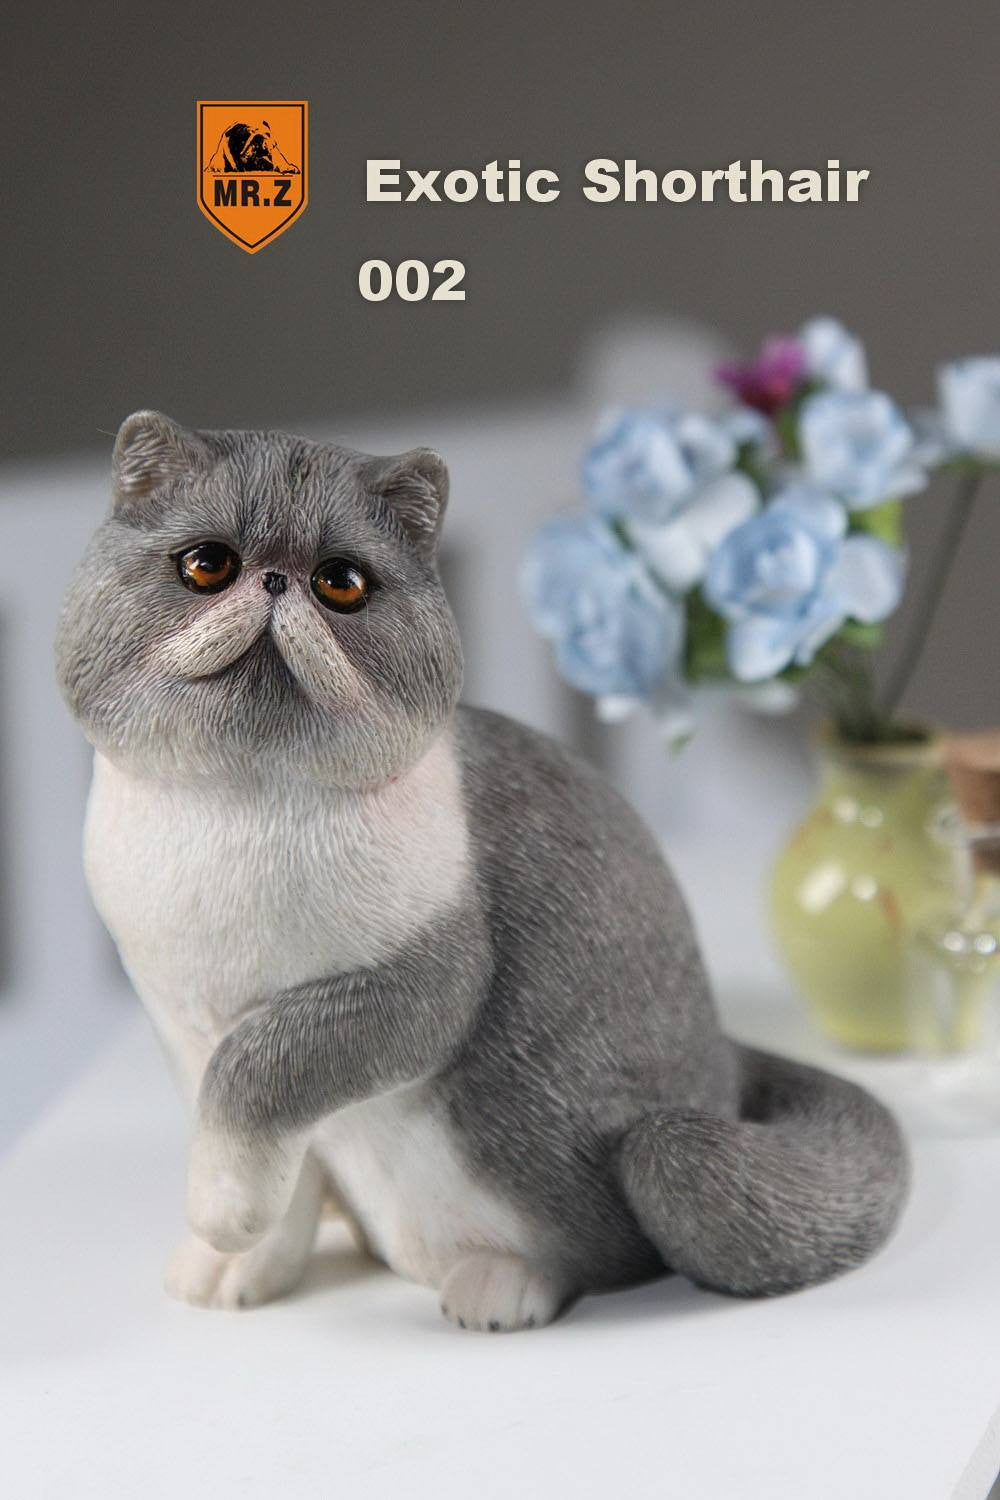 MR.Z - Real Animal Series No.8 - 1/6th Scale Exotic Shorthair Cat (Garfield) 001-005 - Marvelous Toys - 14